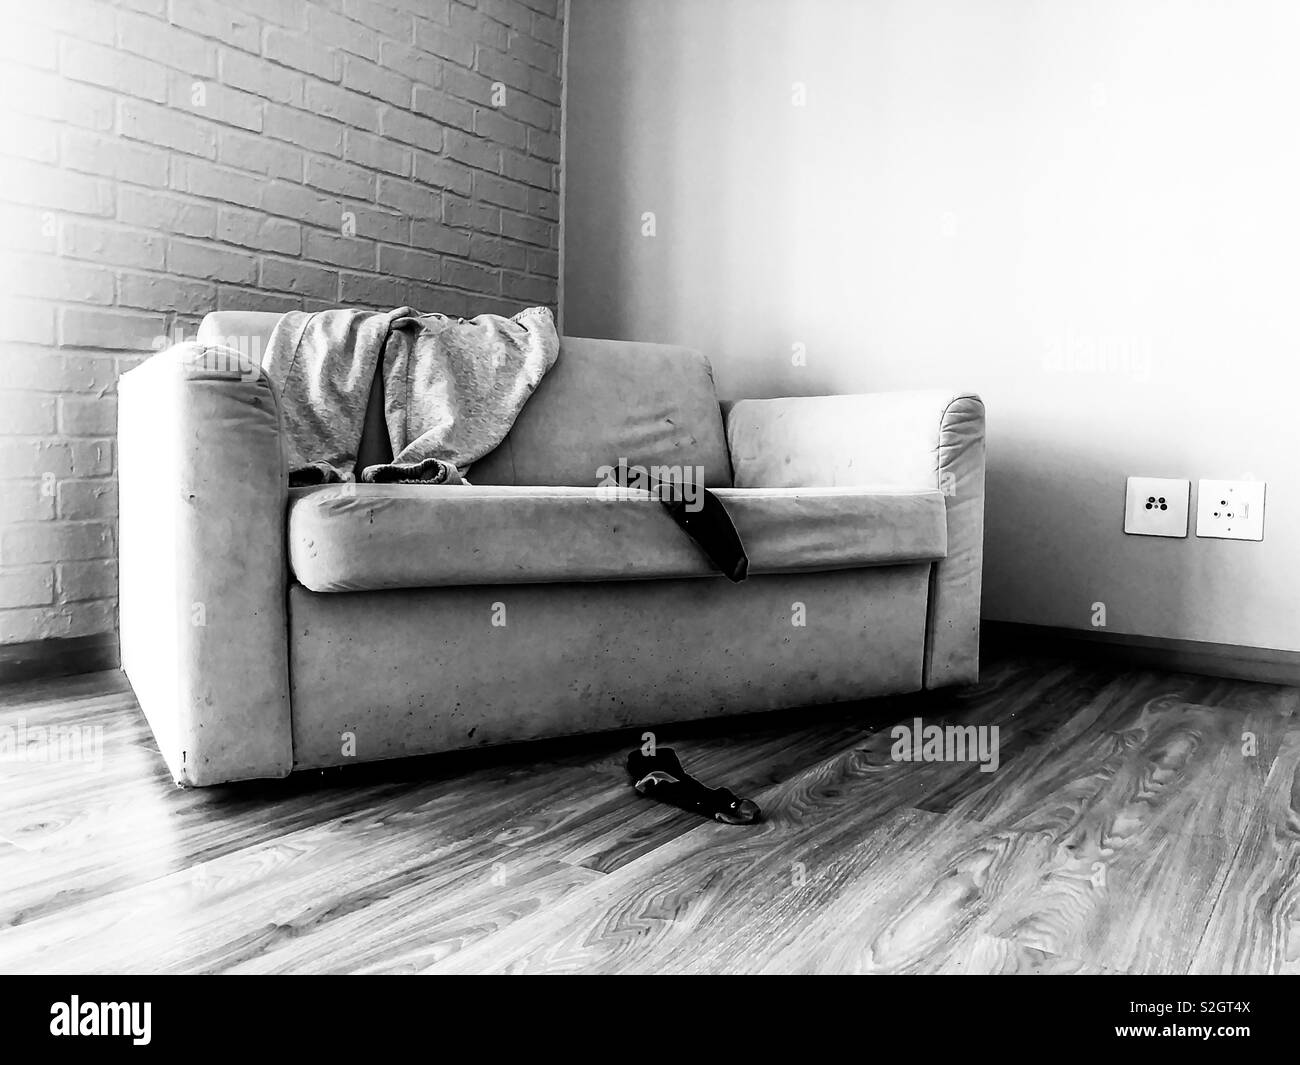 Old couch - Stock Image